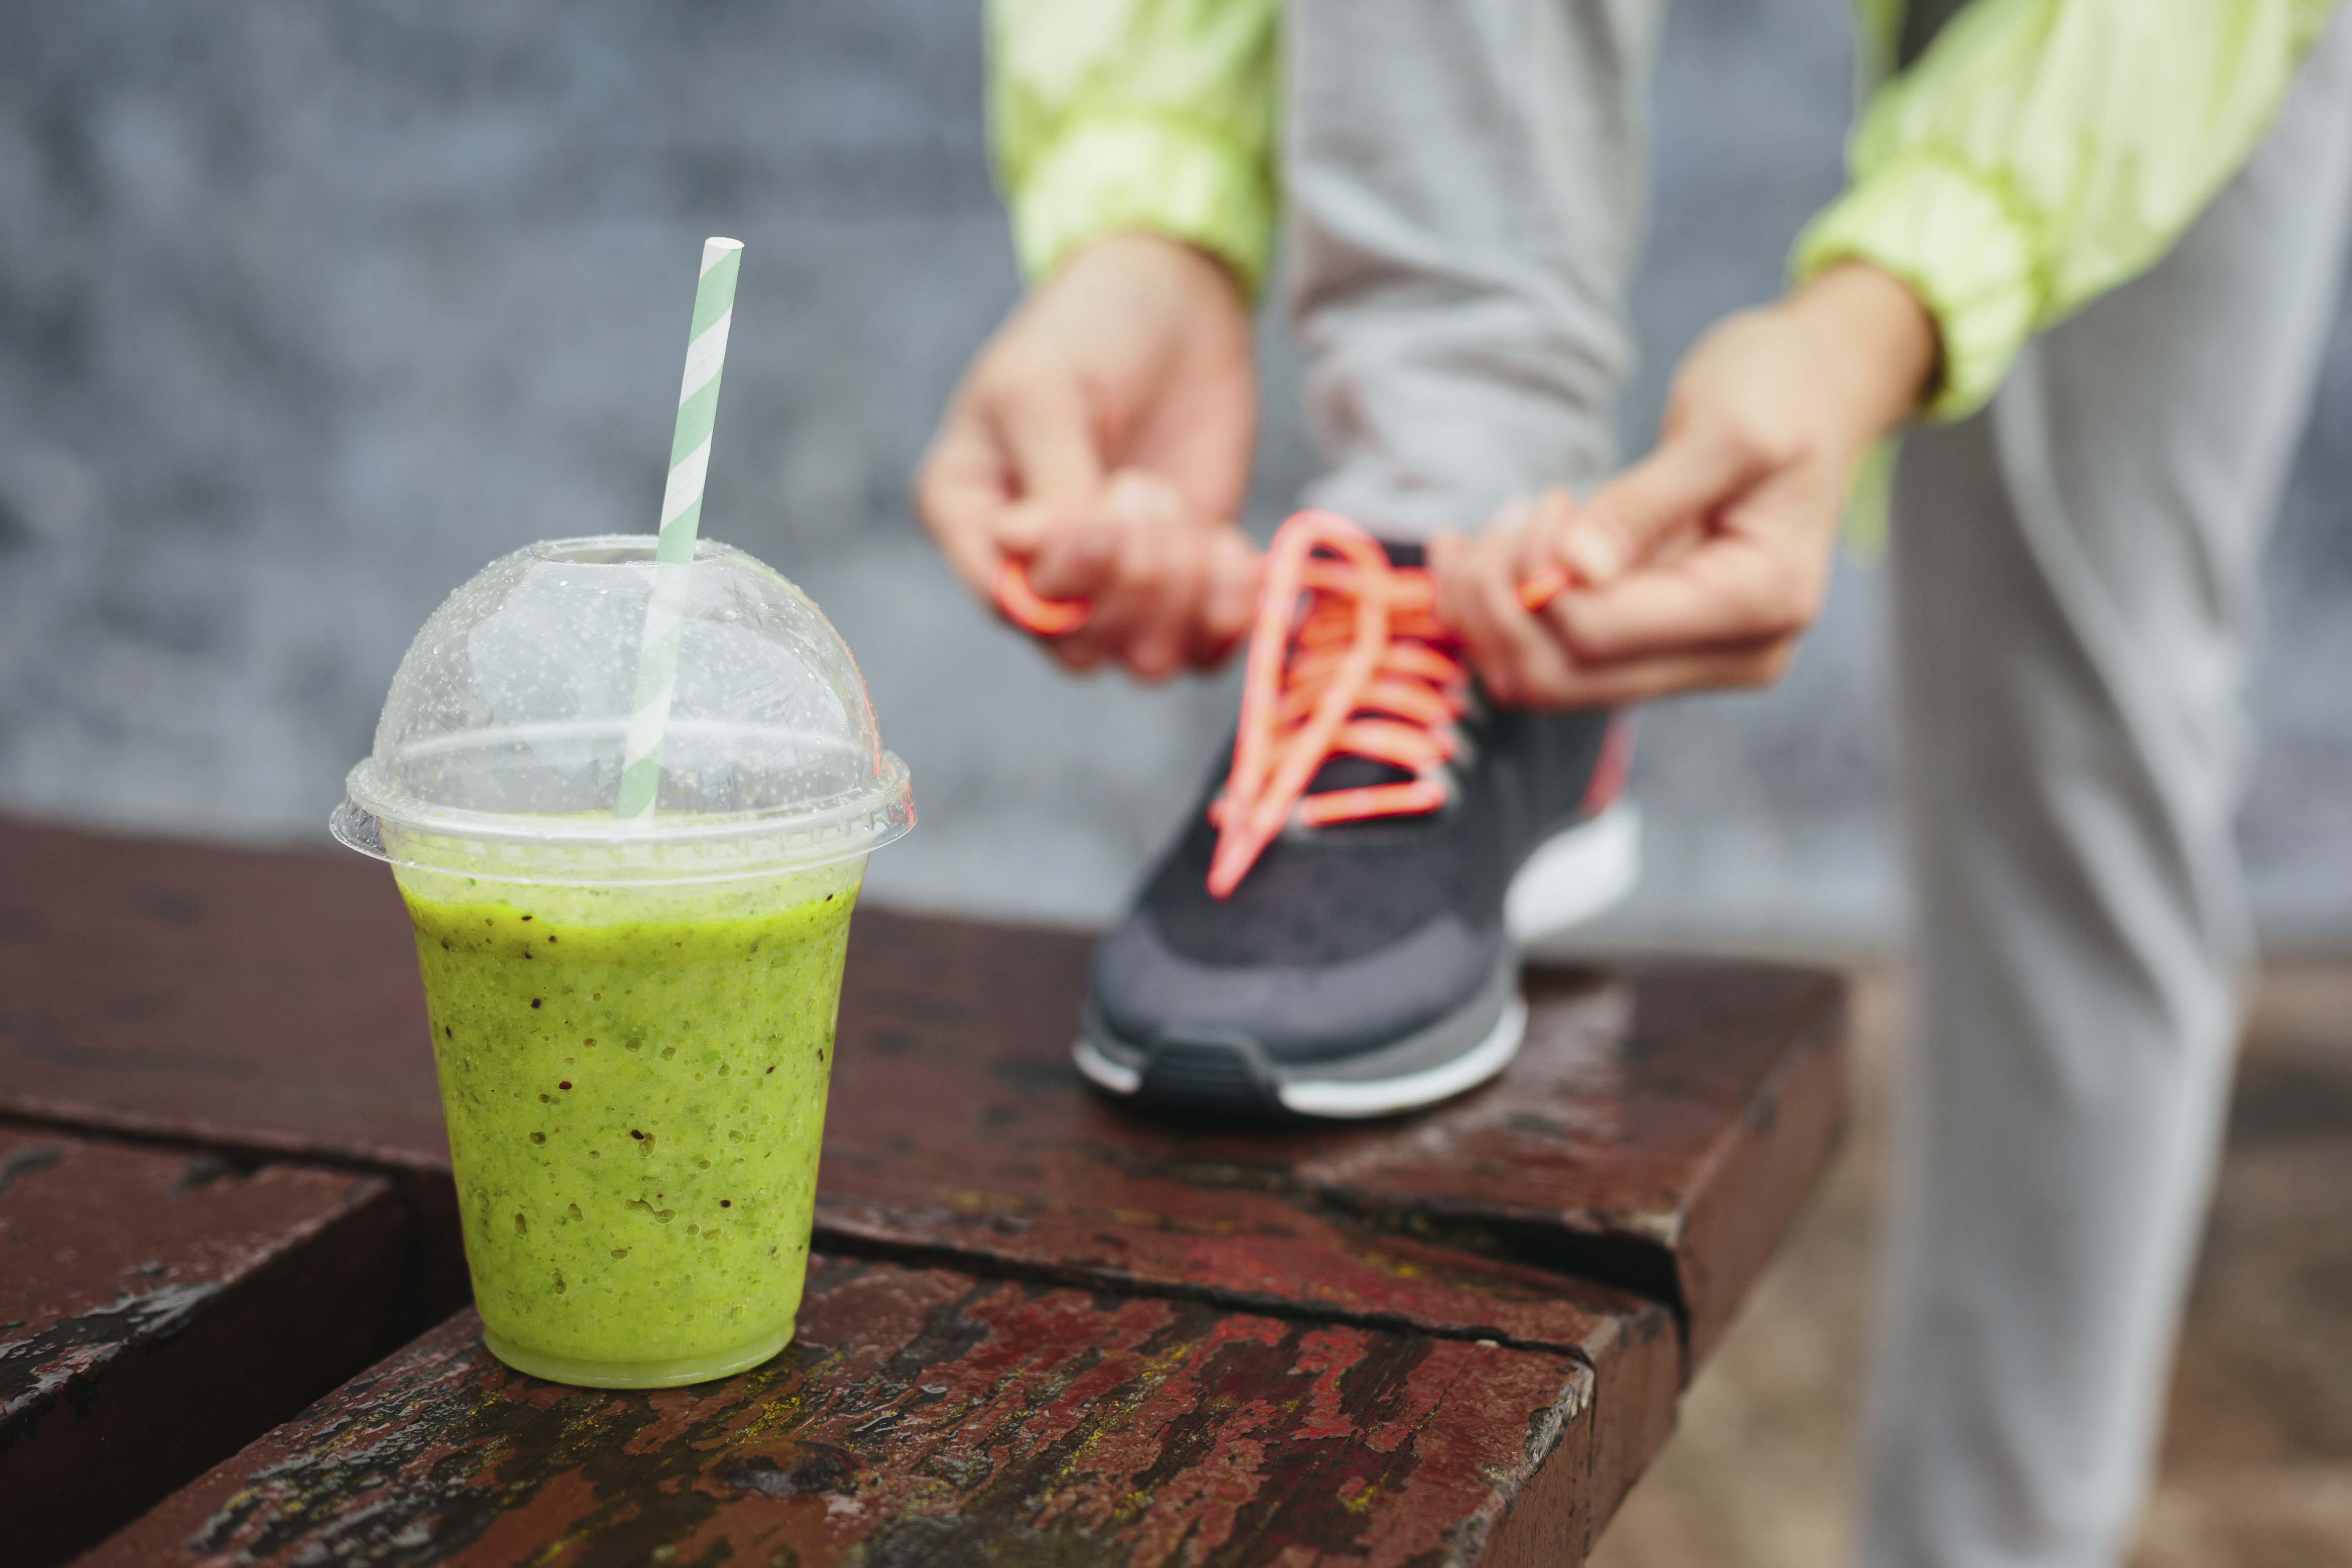 5 Signs You're Eating Too Little for How Much You Work Out